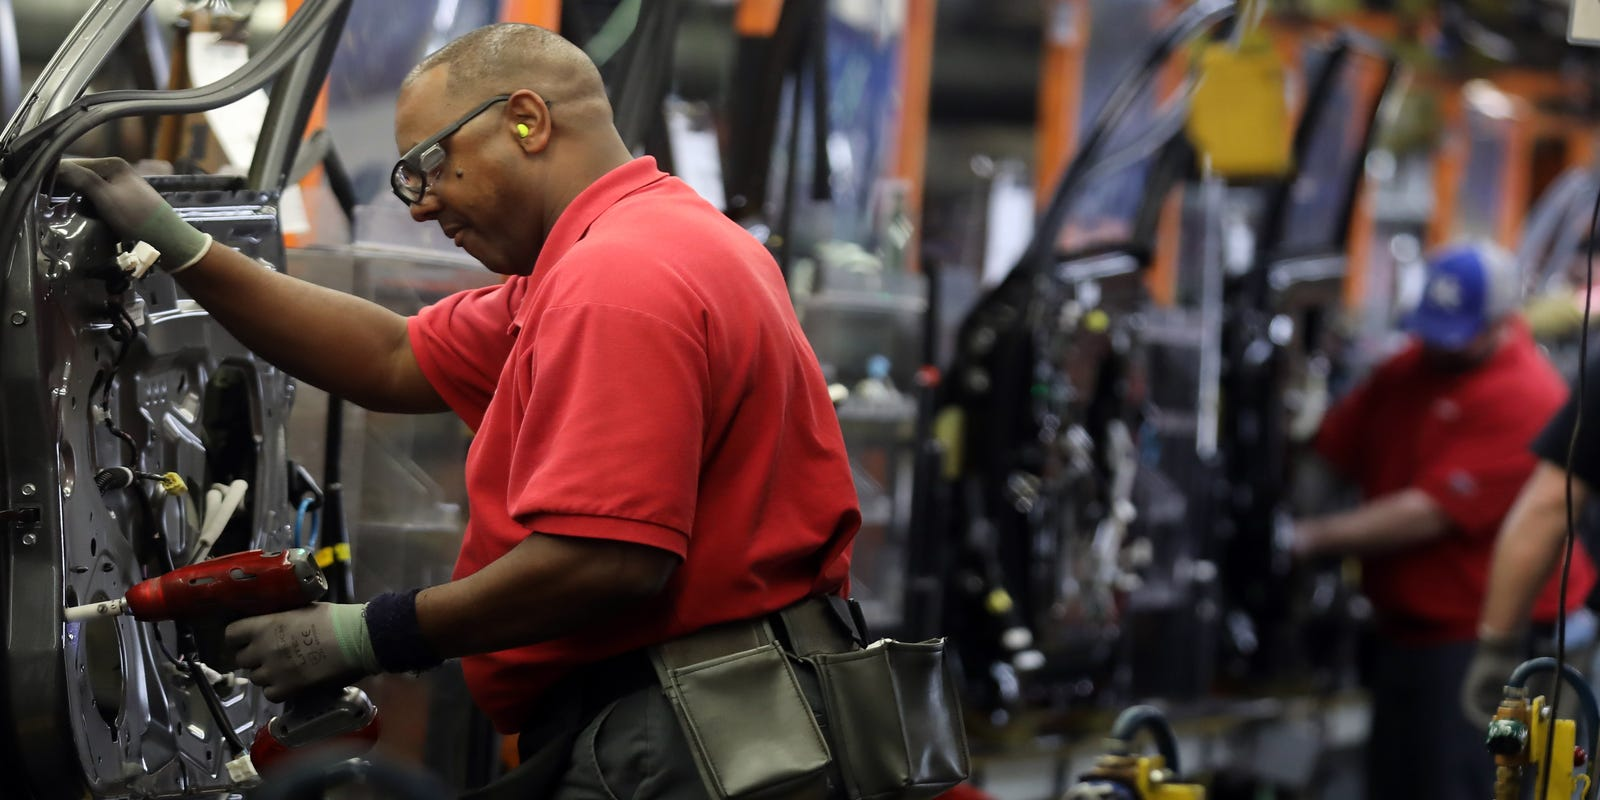 Tennessee auto industry: 7 things you may not know